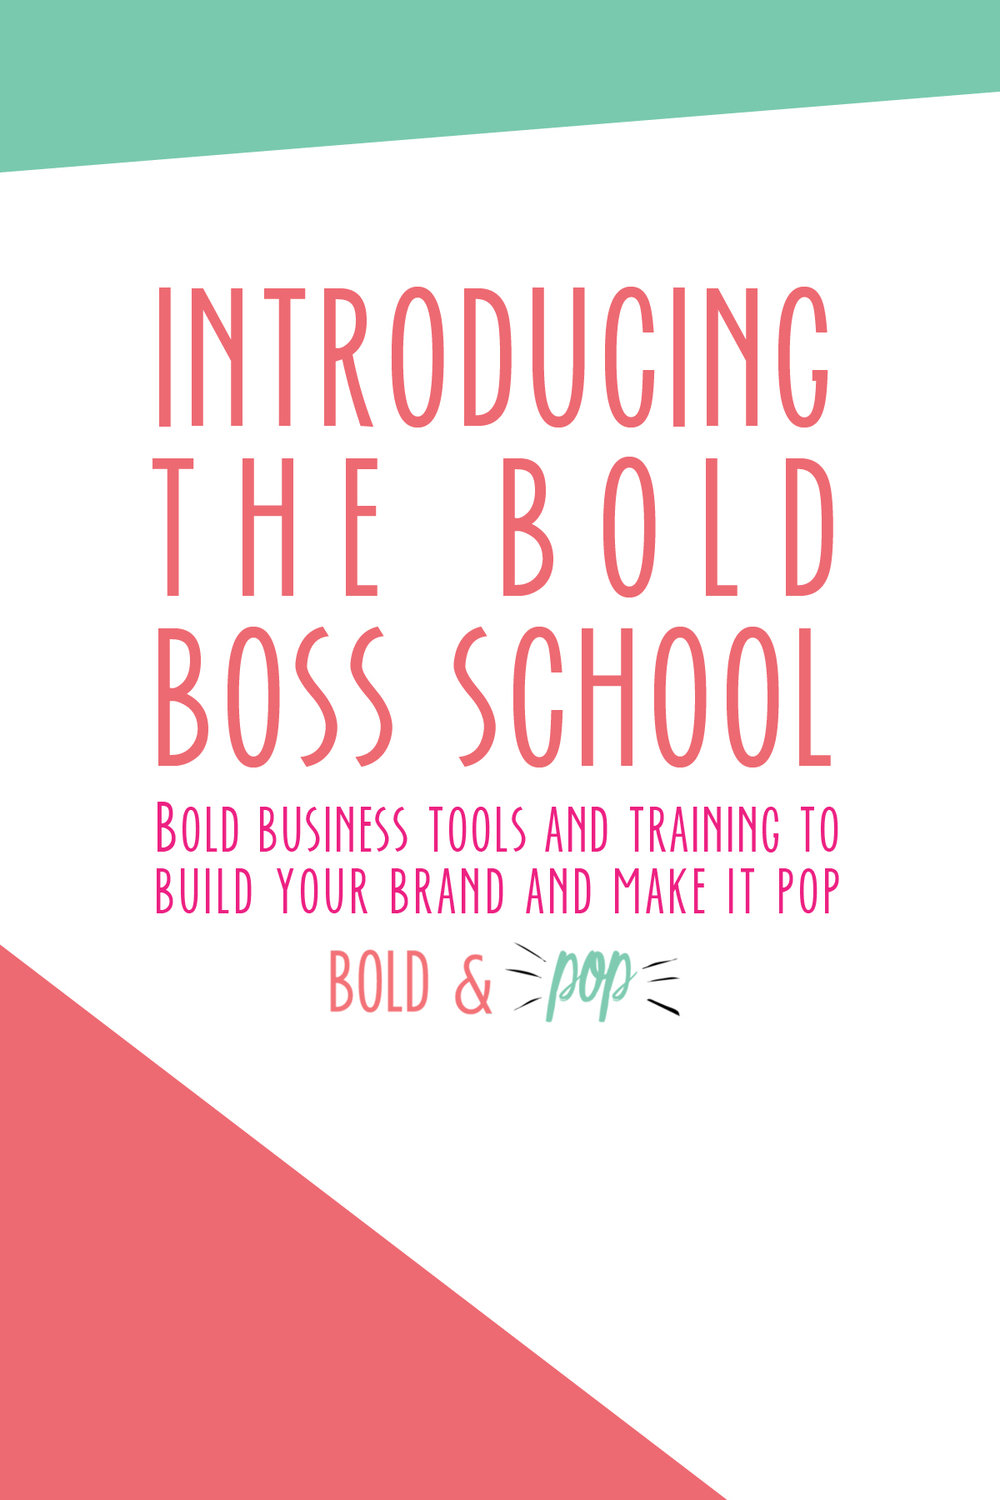 Bold & Pop : Introducing the Bold Boss School Bold Business Tools and training to build your brand and make it pop!